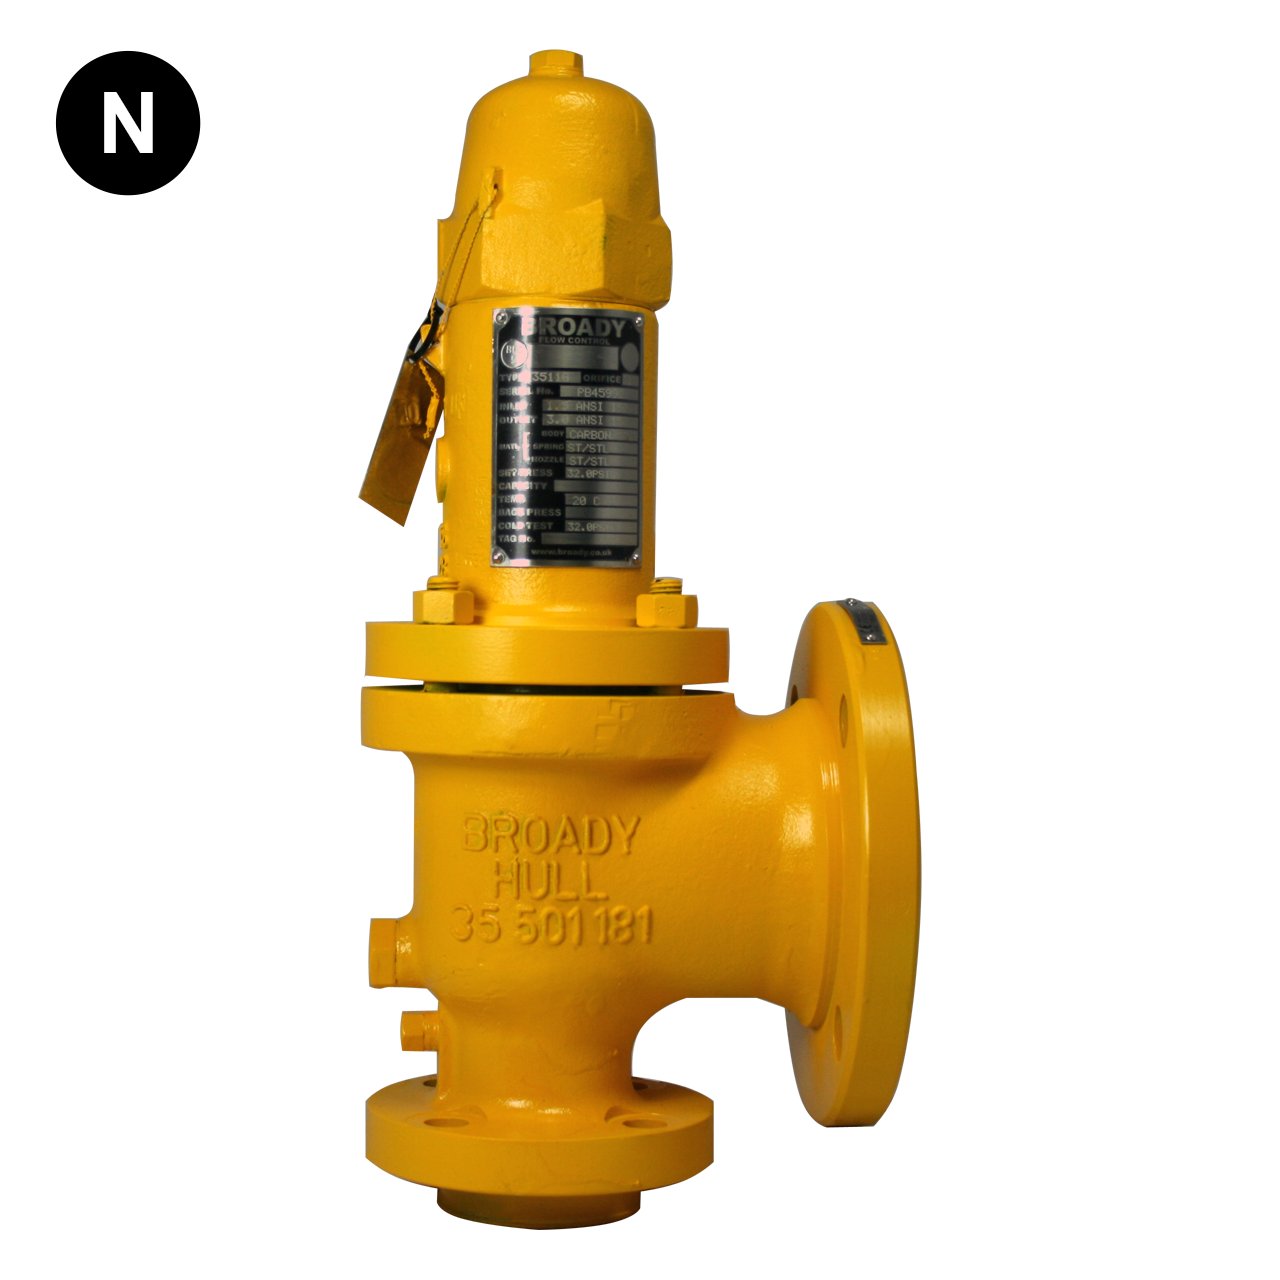 Broady 3500 Safety Relief Valve – Flowstar (UK) Limited